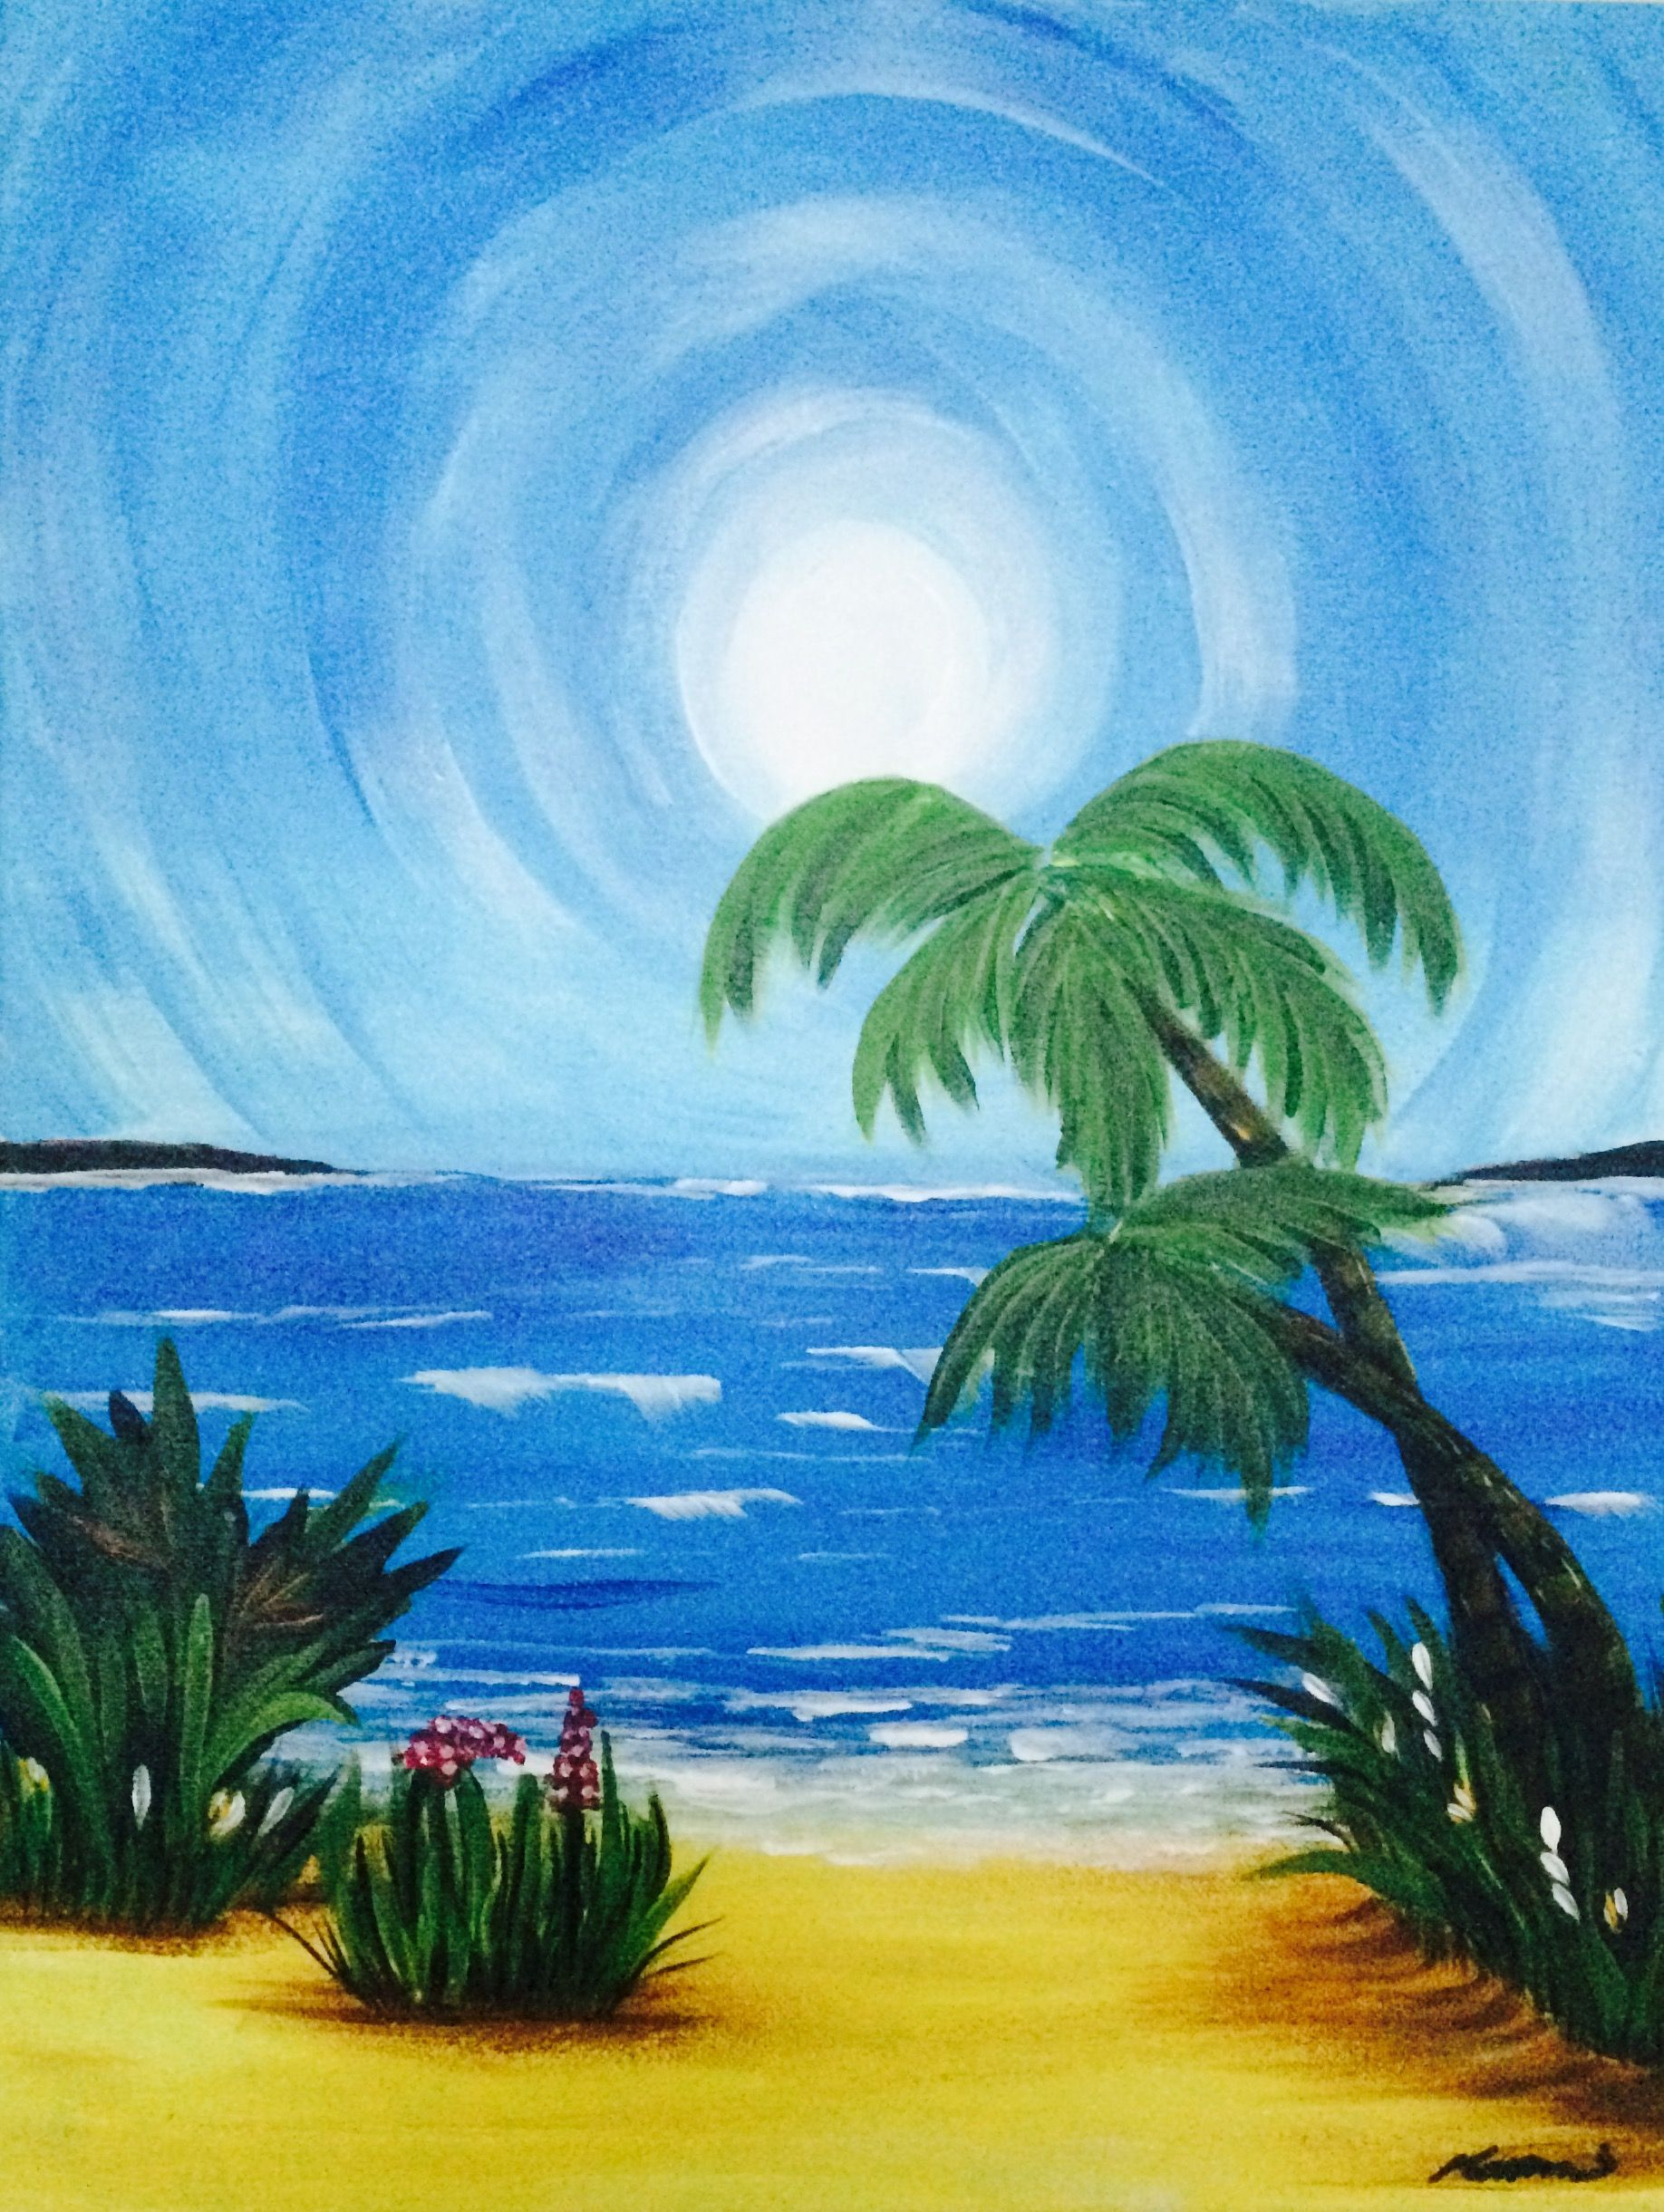 Eat Drink Laugh And Paint At Our Nightly Events Easy Acrylic Painting Of Palm Trees Waves Greenery In The Tropical Sun